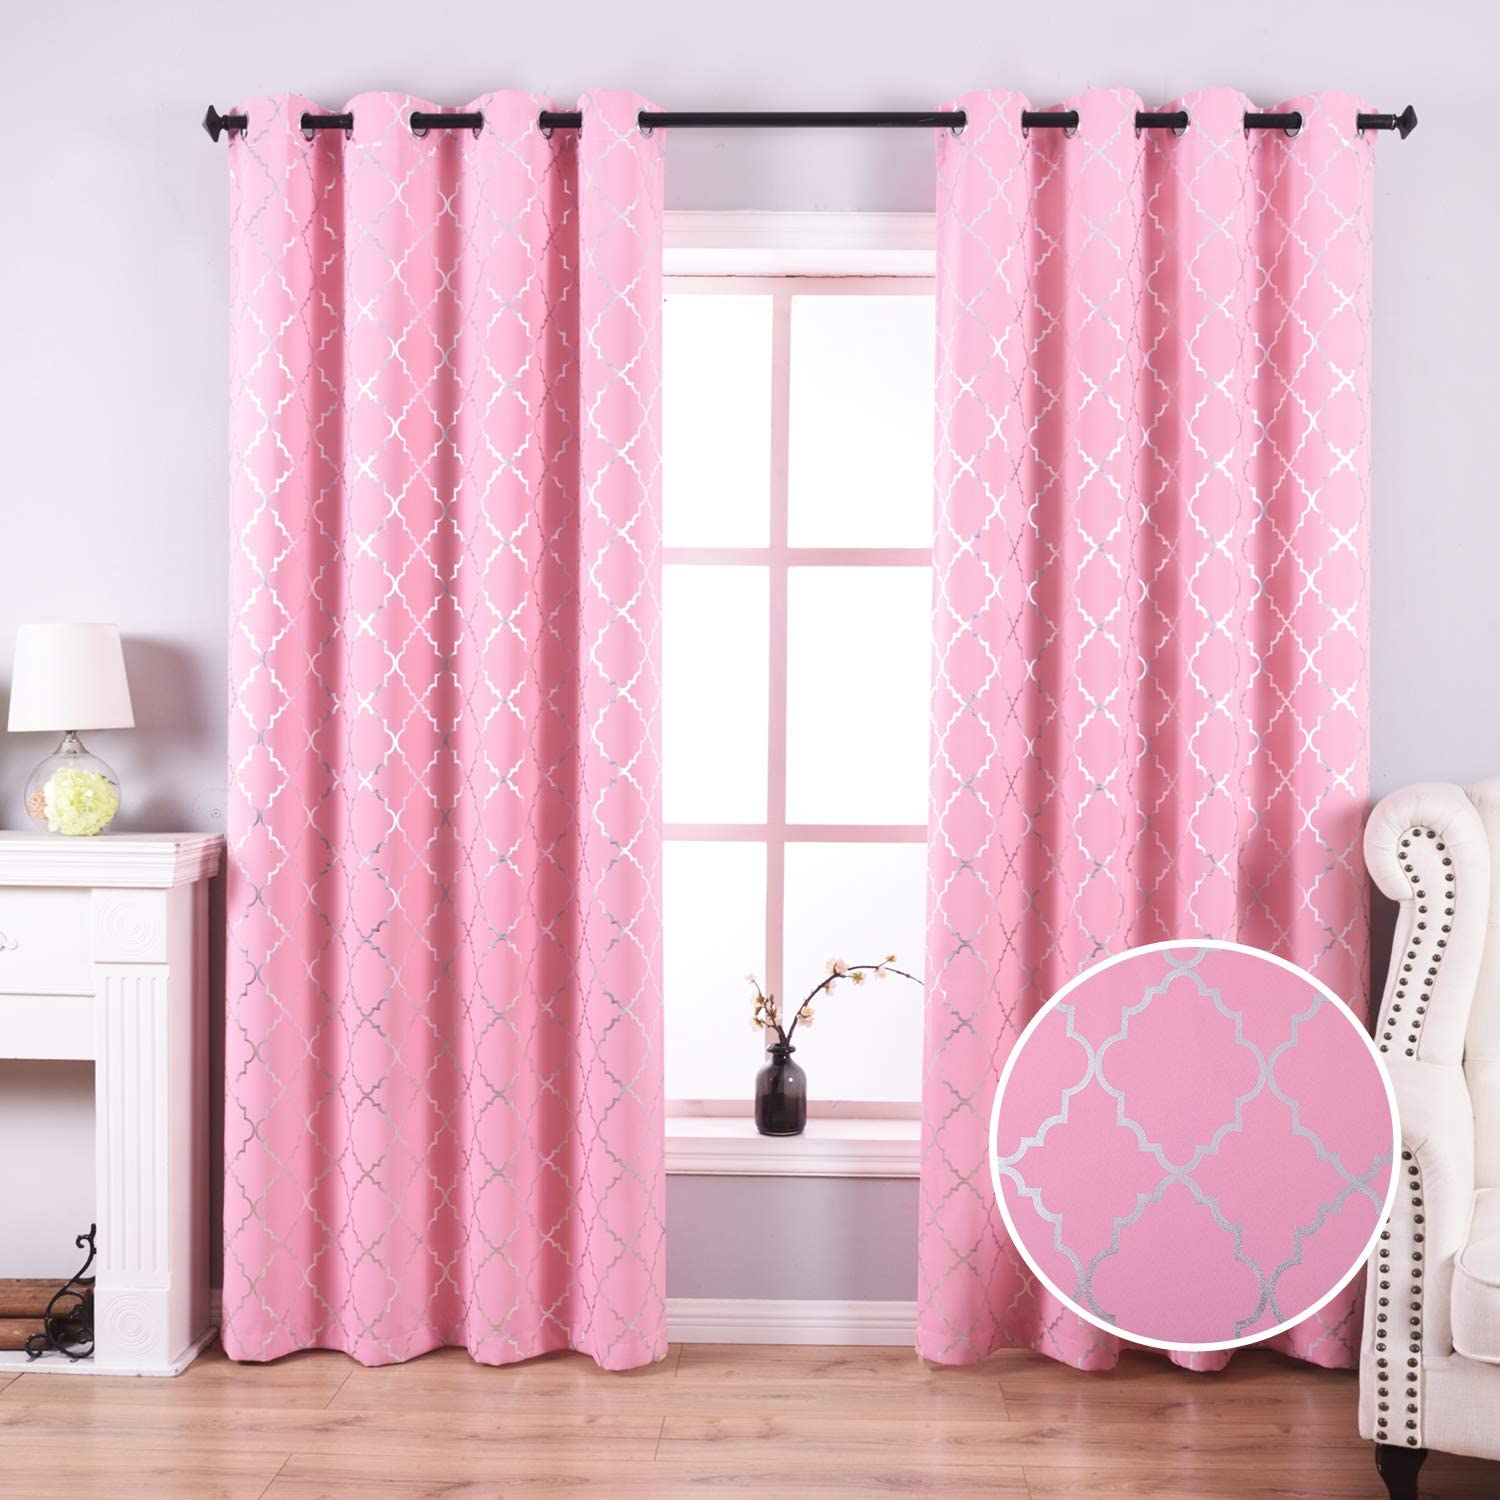 Amazon Com Anjee Pink Blackout Curtains For Girls Room With Moroccan Pattern Blackout Drapes Grommet Top Window For Noise Reducing 52 X 84 Inches Pink Kitchen Dining